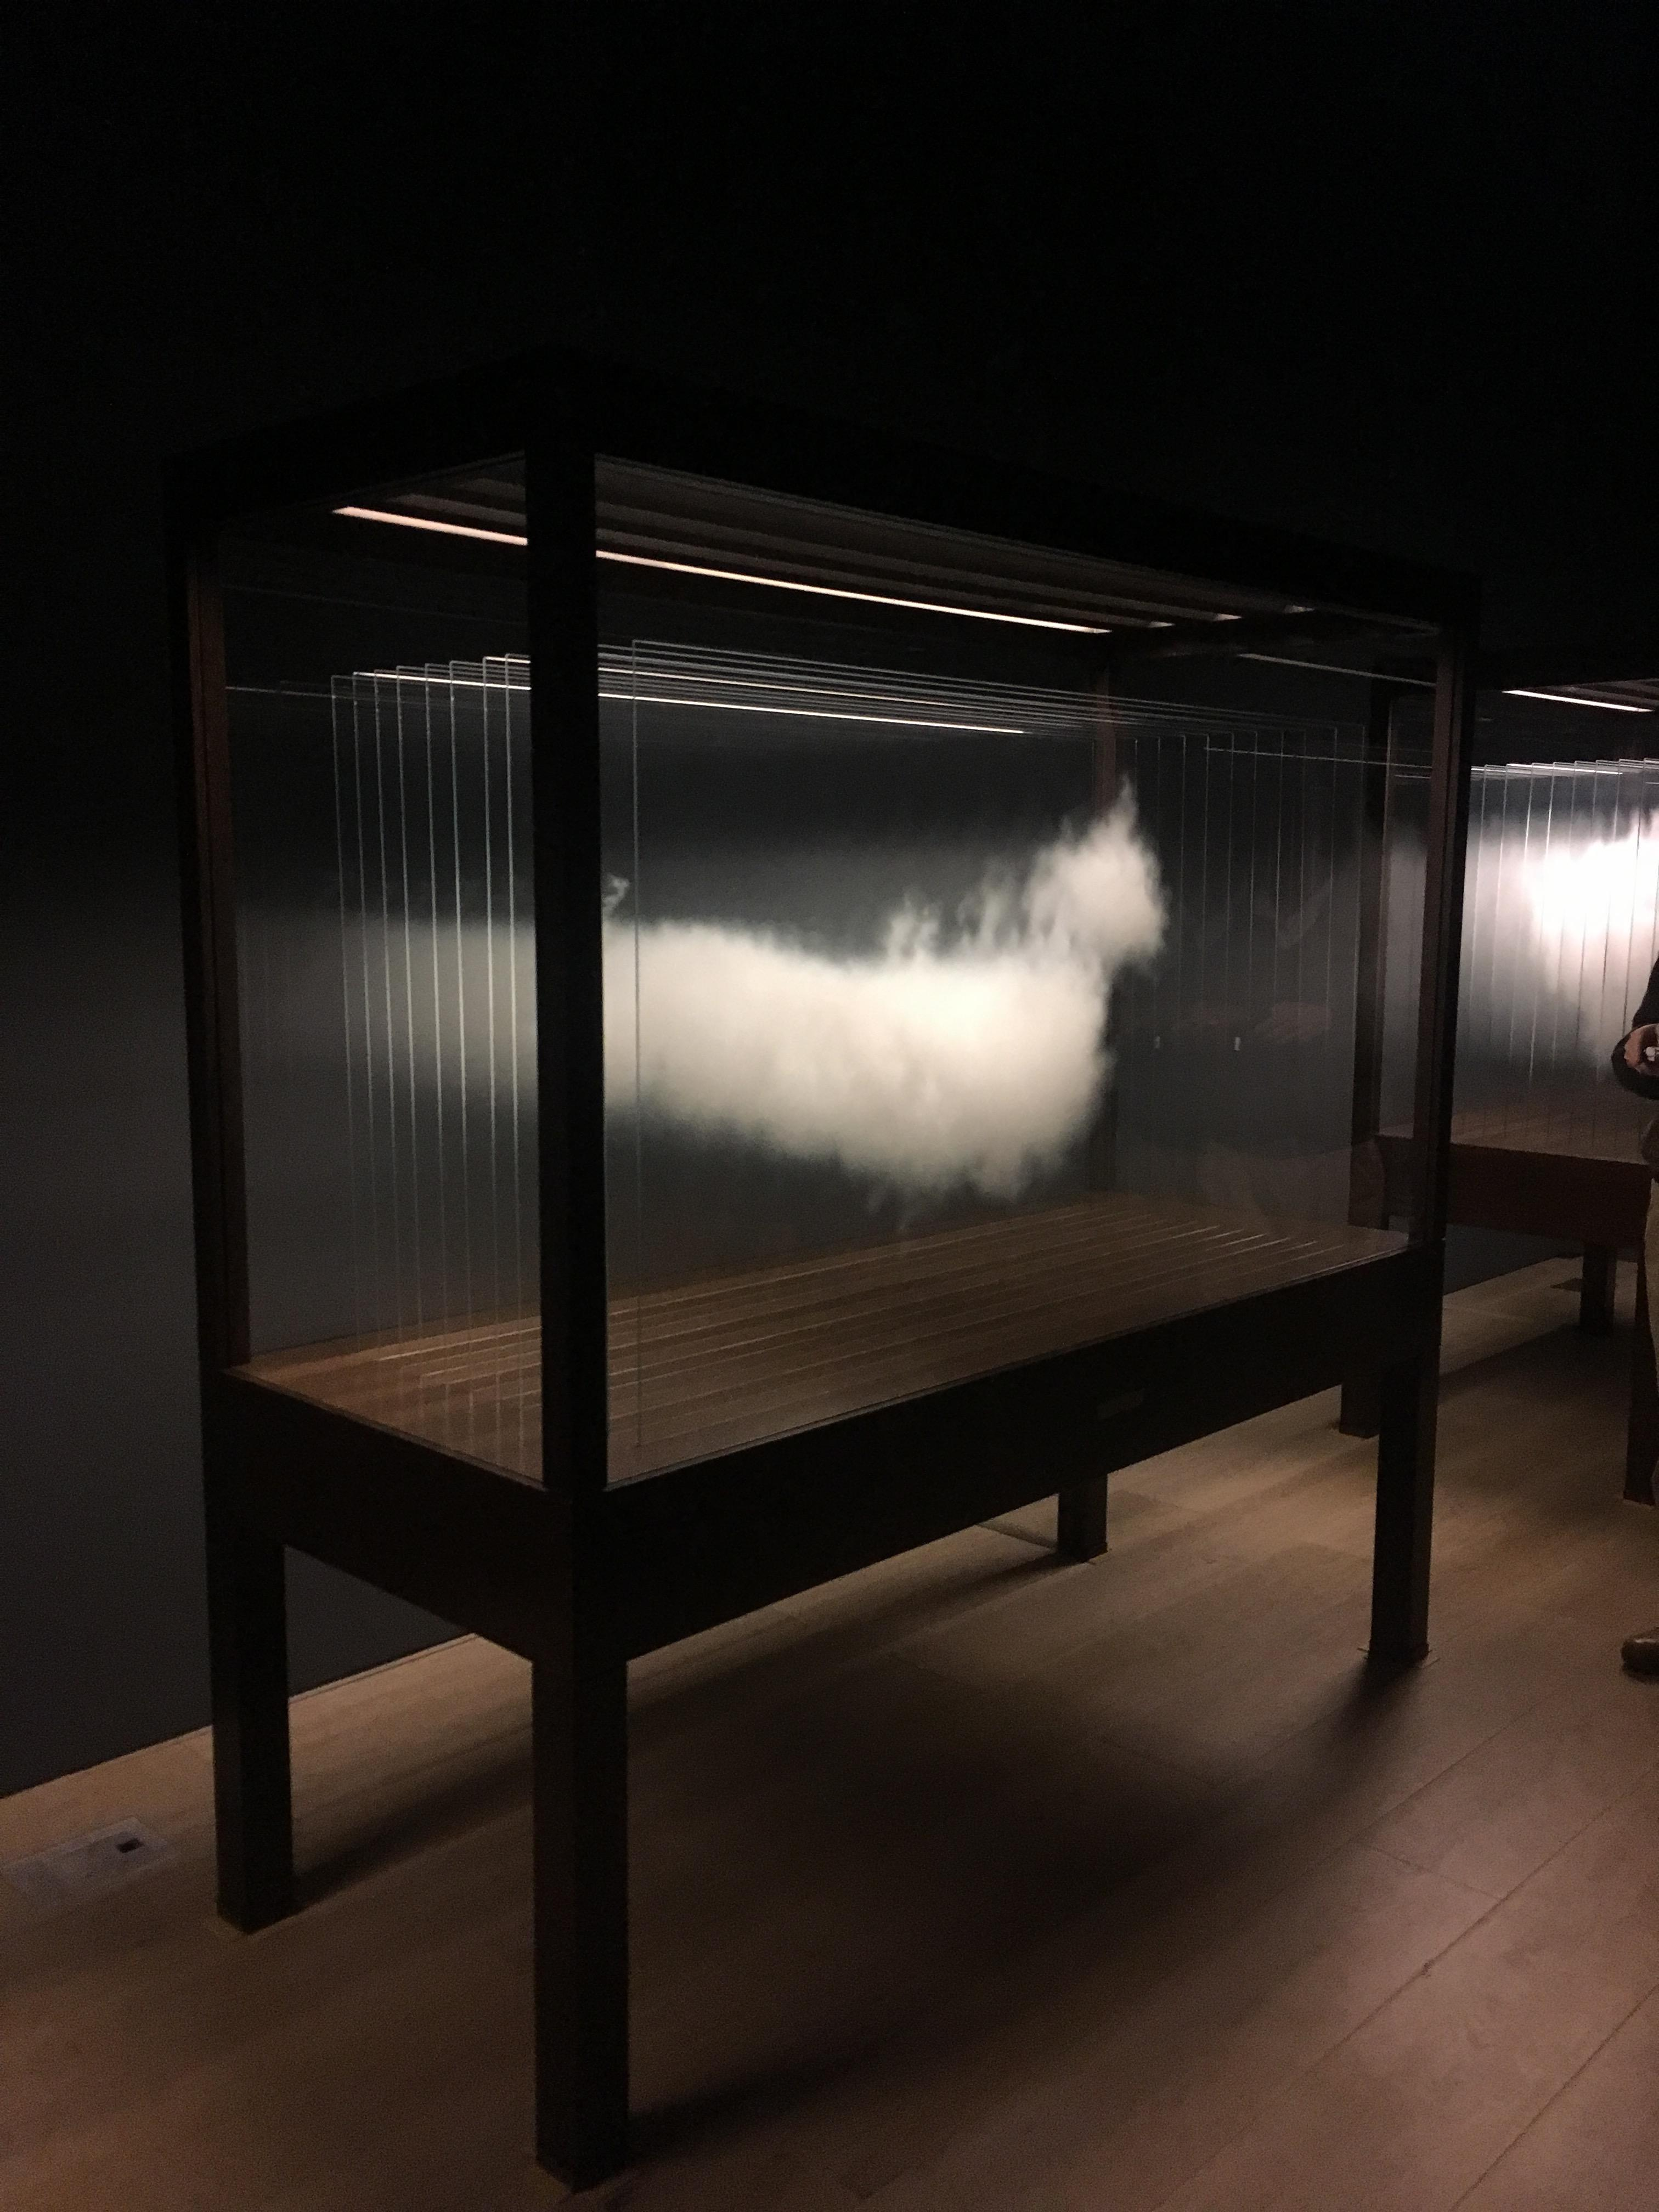 New works of Leandro Erlich : The Cloud -Japan